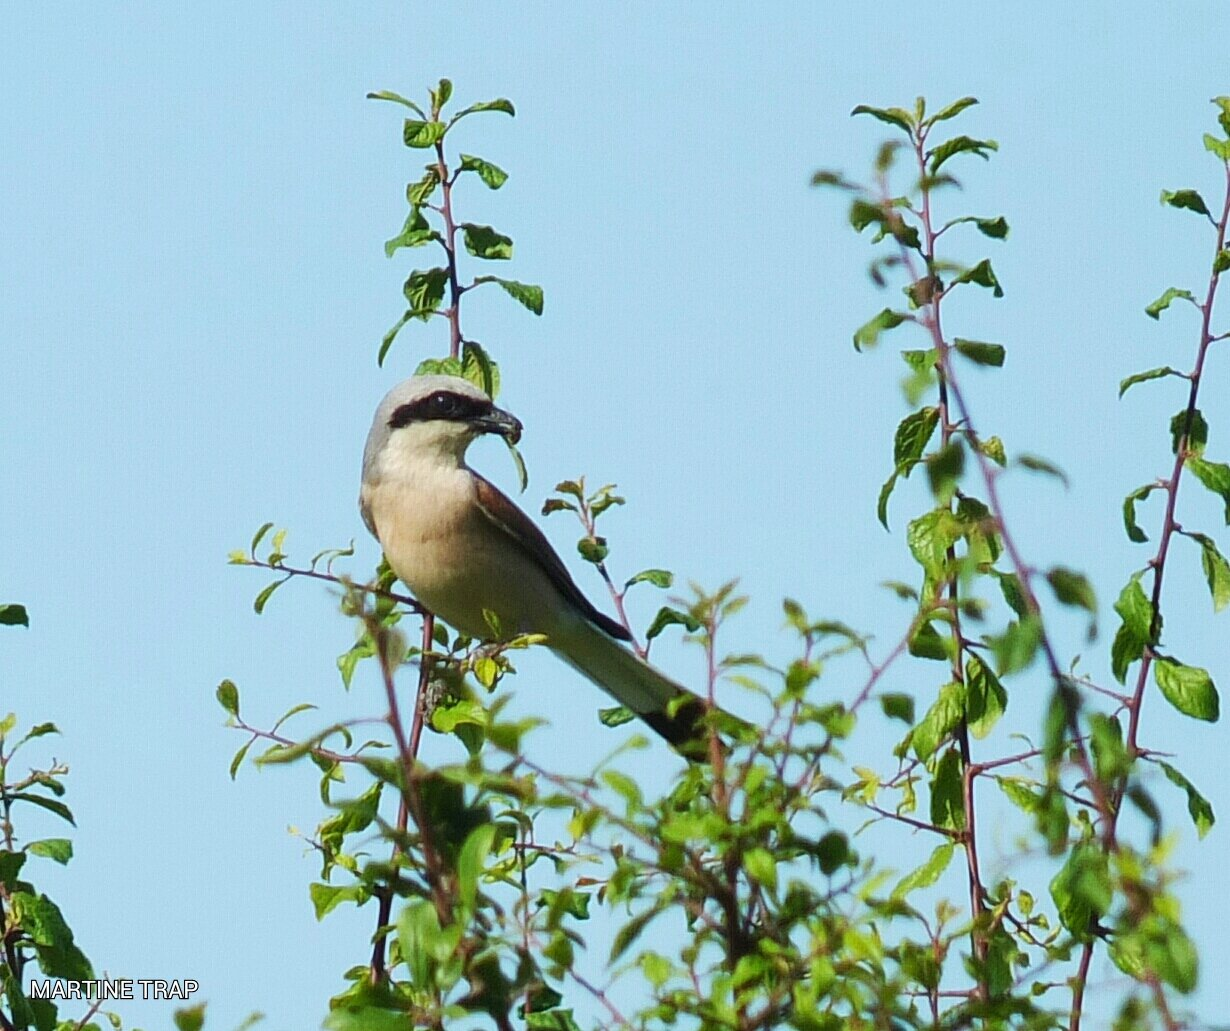 Pie-grièche écorcheur, Red-backed Shrike, Neuntöter